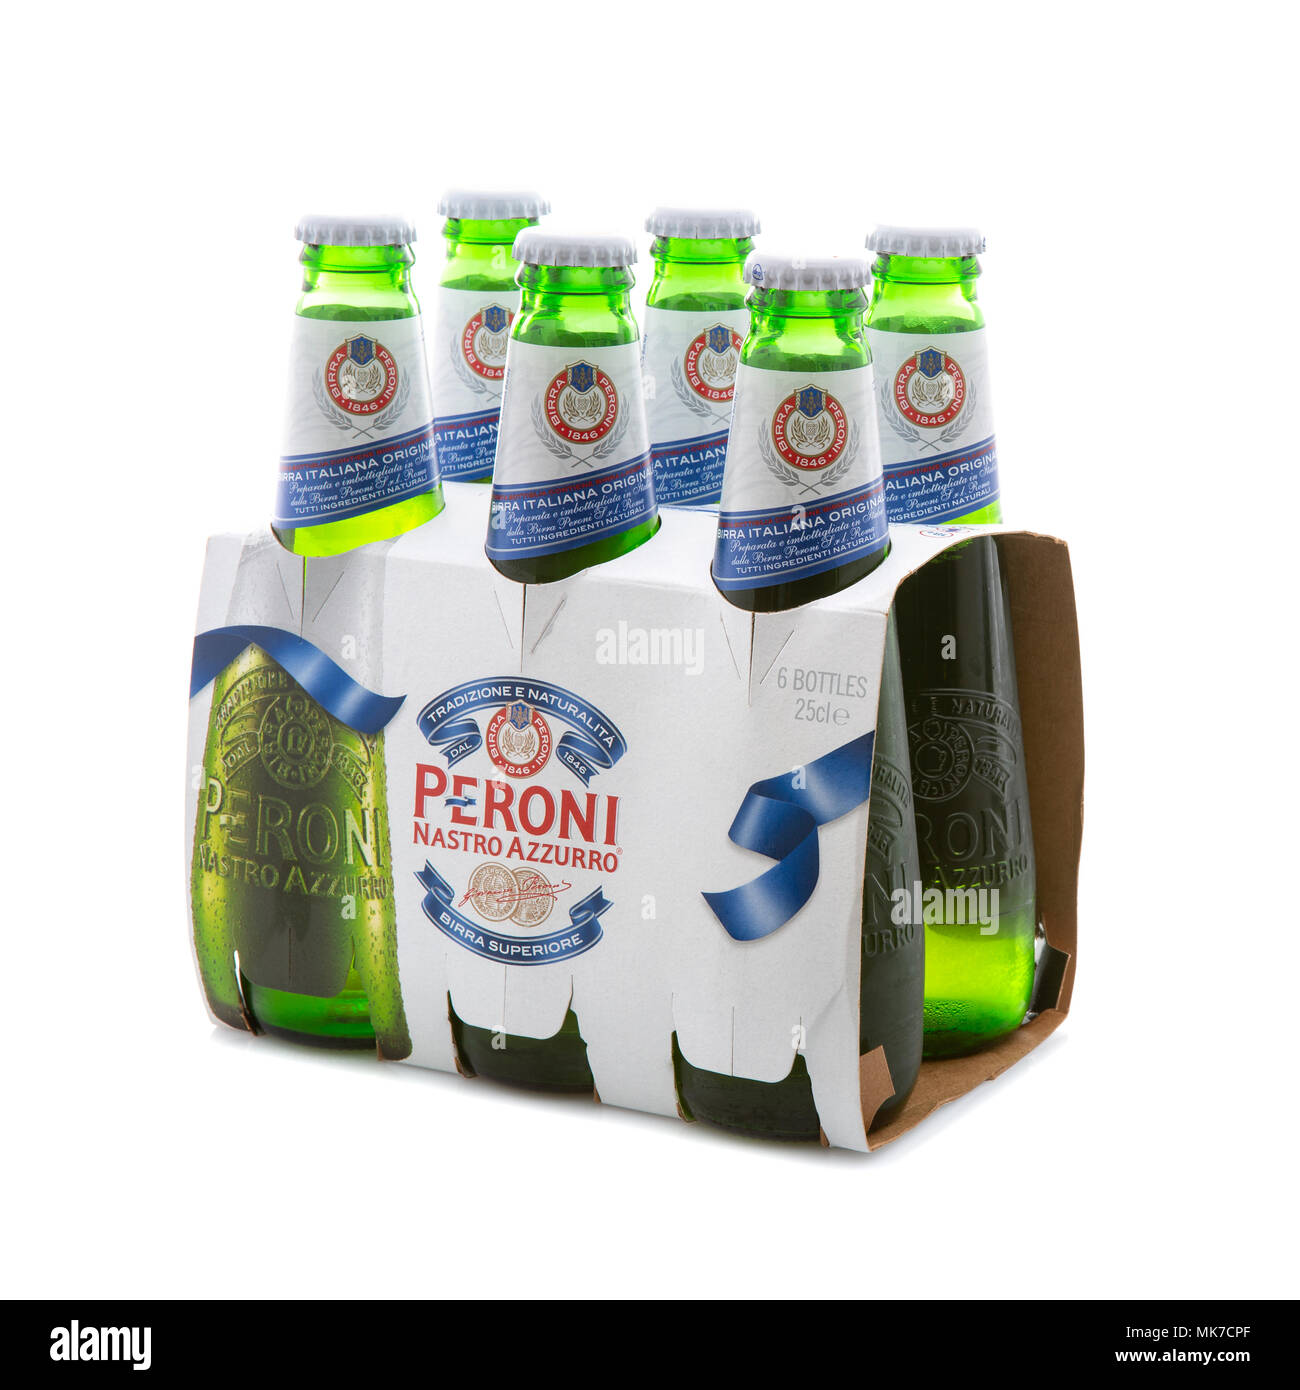 SWINDON, UK - MAY 7th, 2017: 6 Pack of Peroni Beer, Peroni Brewery (Birra Peroni), is a brewing company, founded in Italy and owned by SAB Miller - Stock Image